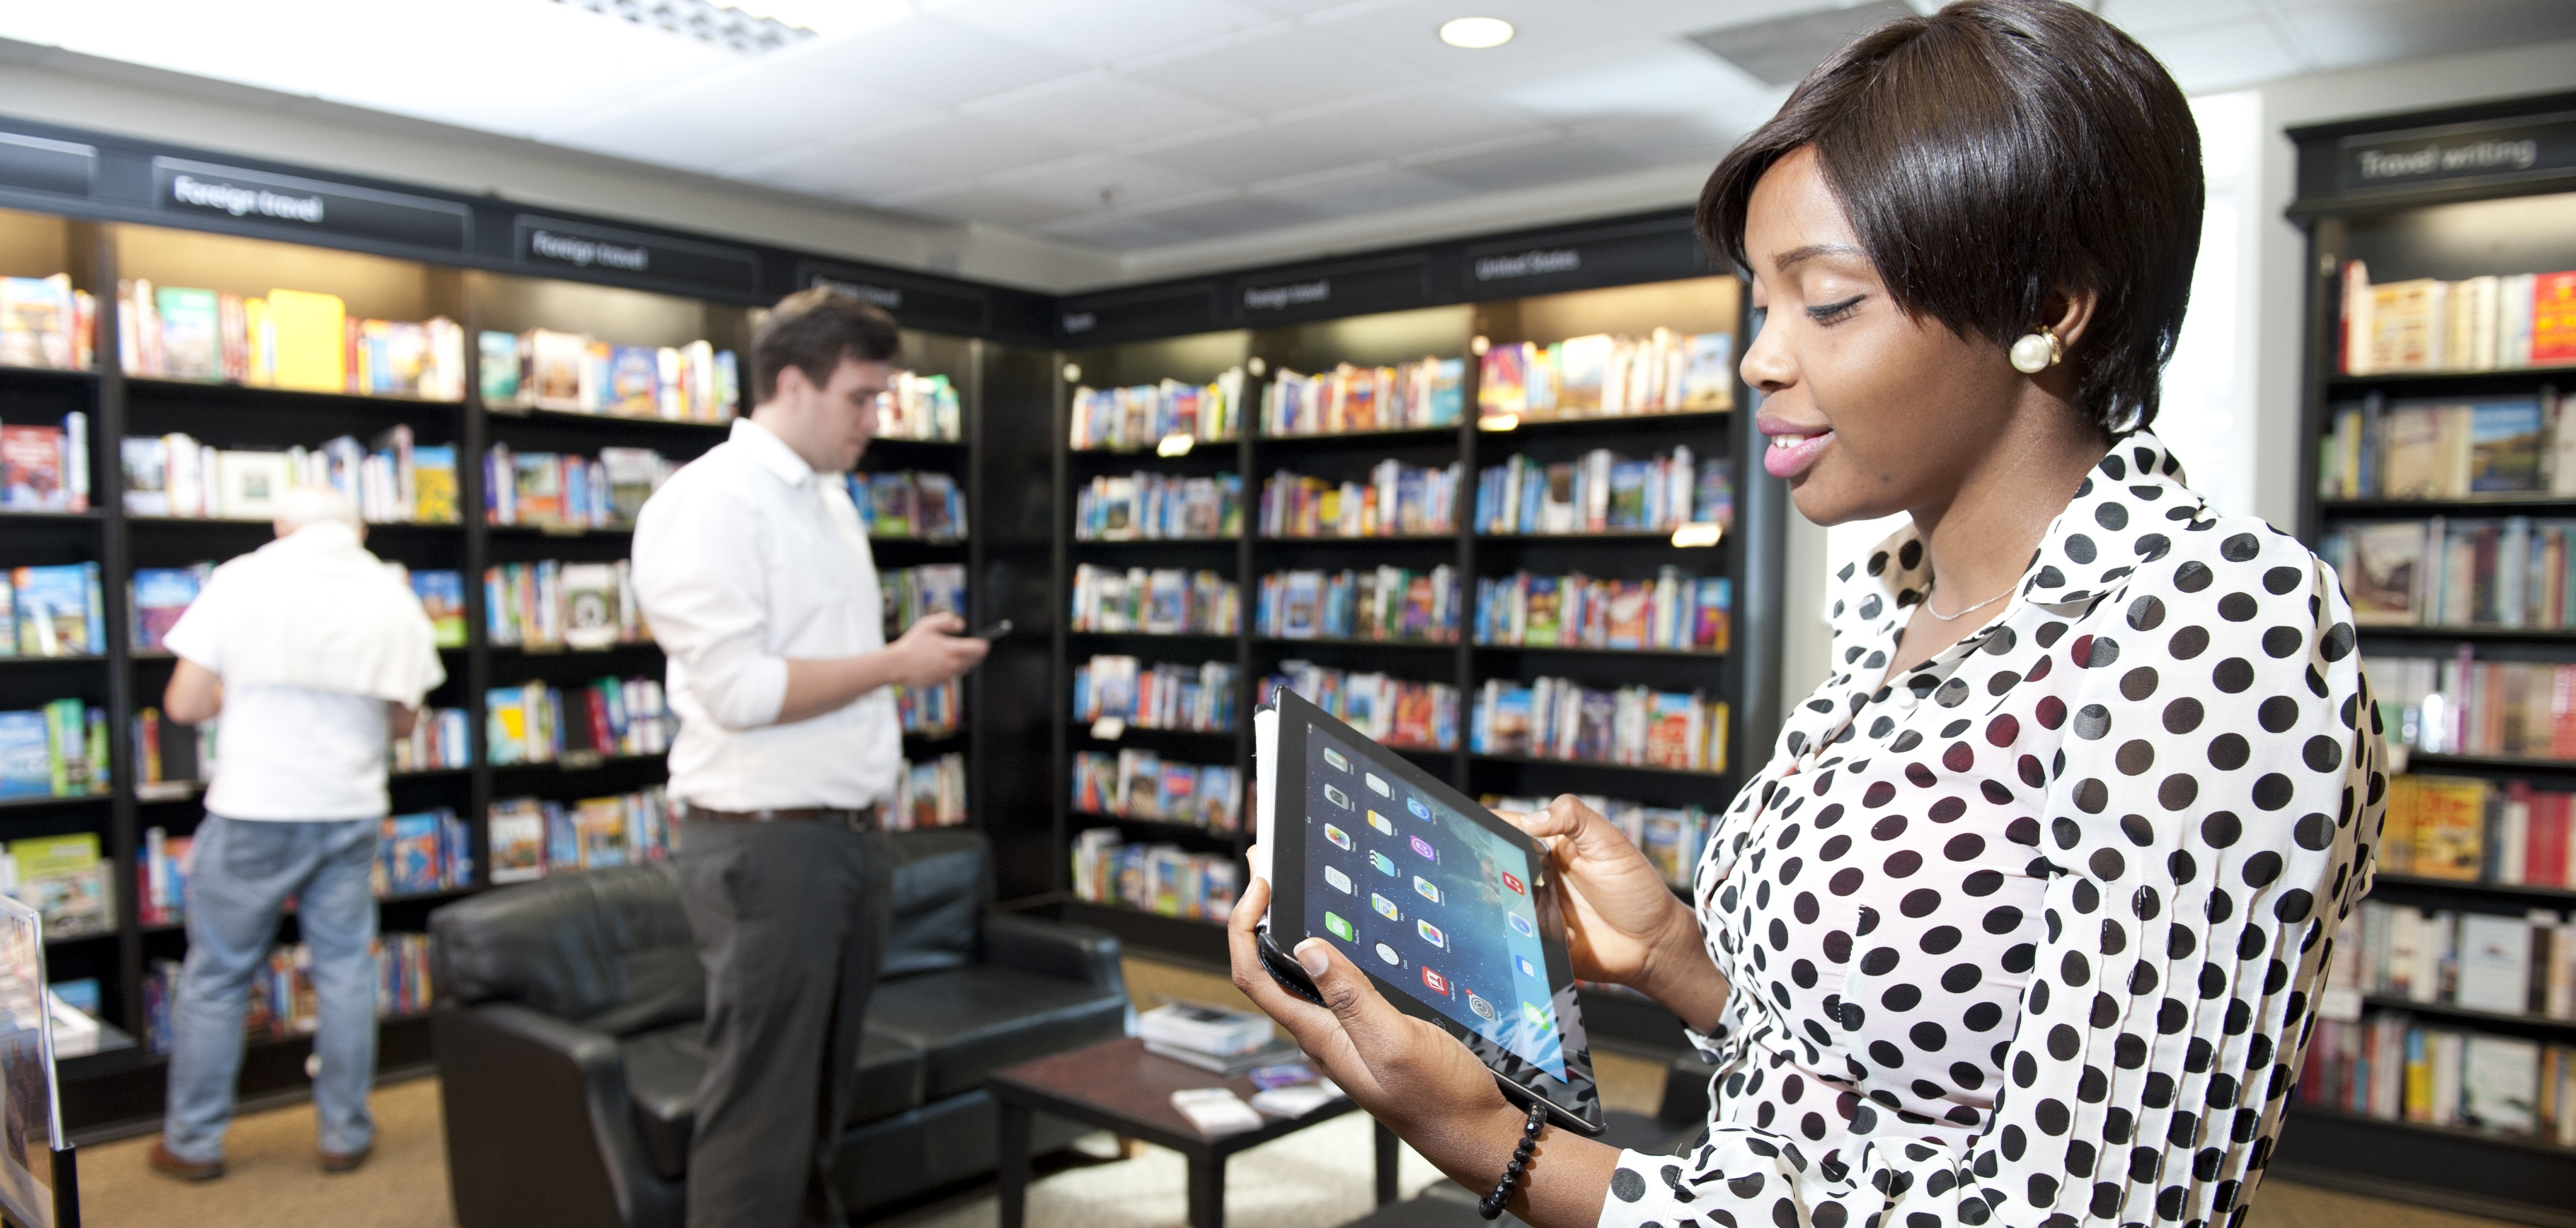 Women looking at tablet in bookshop